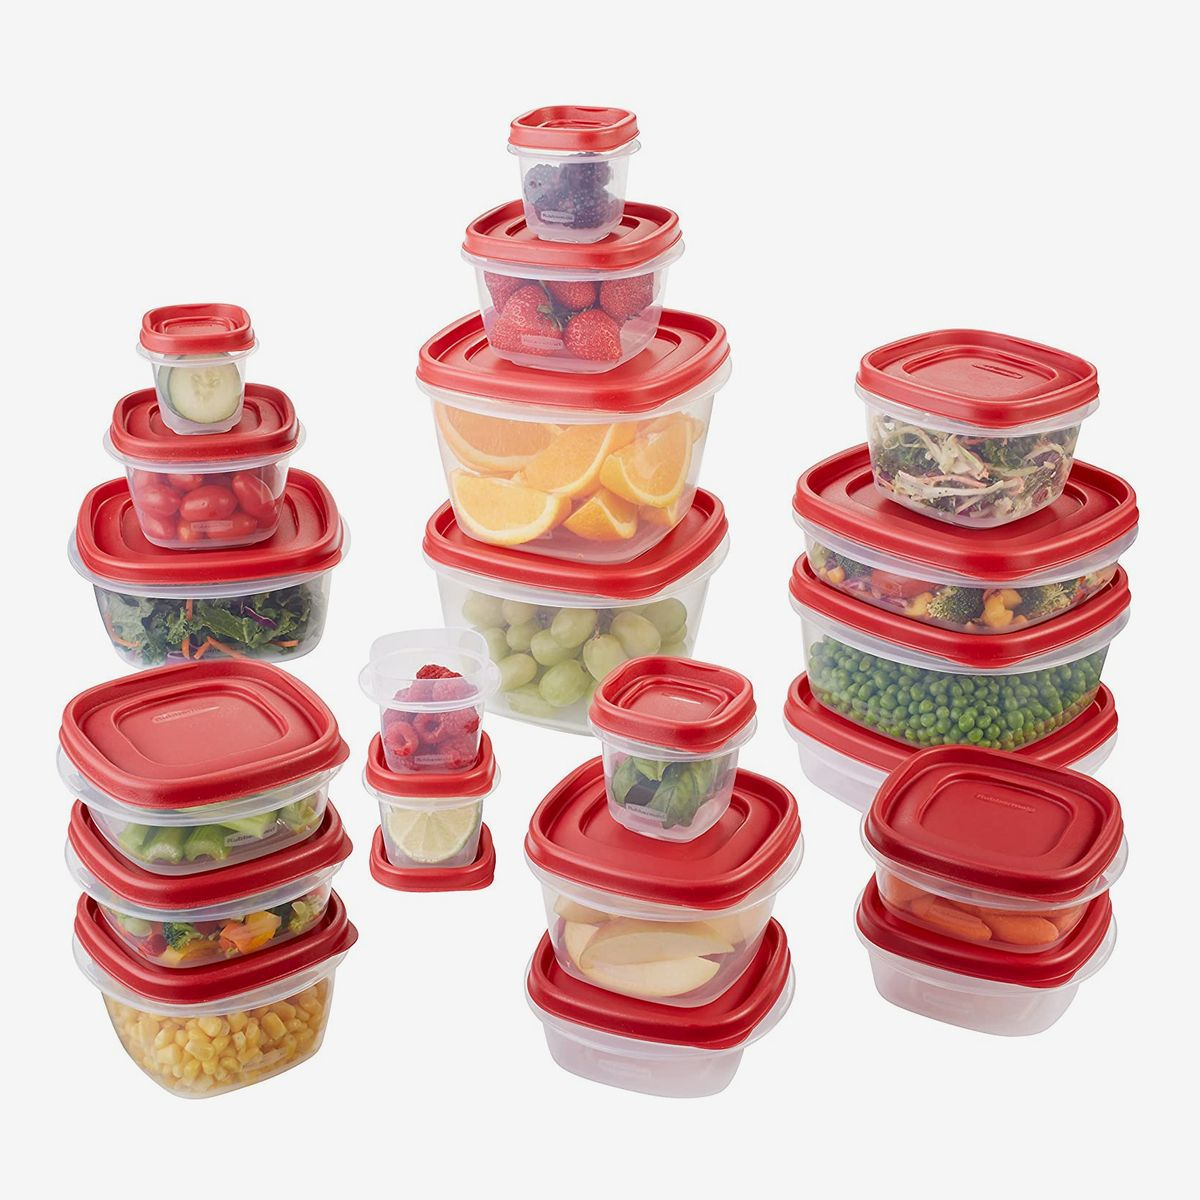 A set of assorted food storage containers with red lids